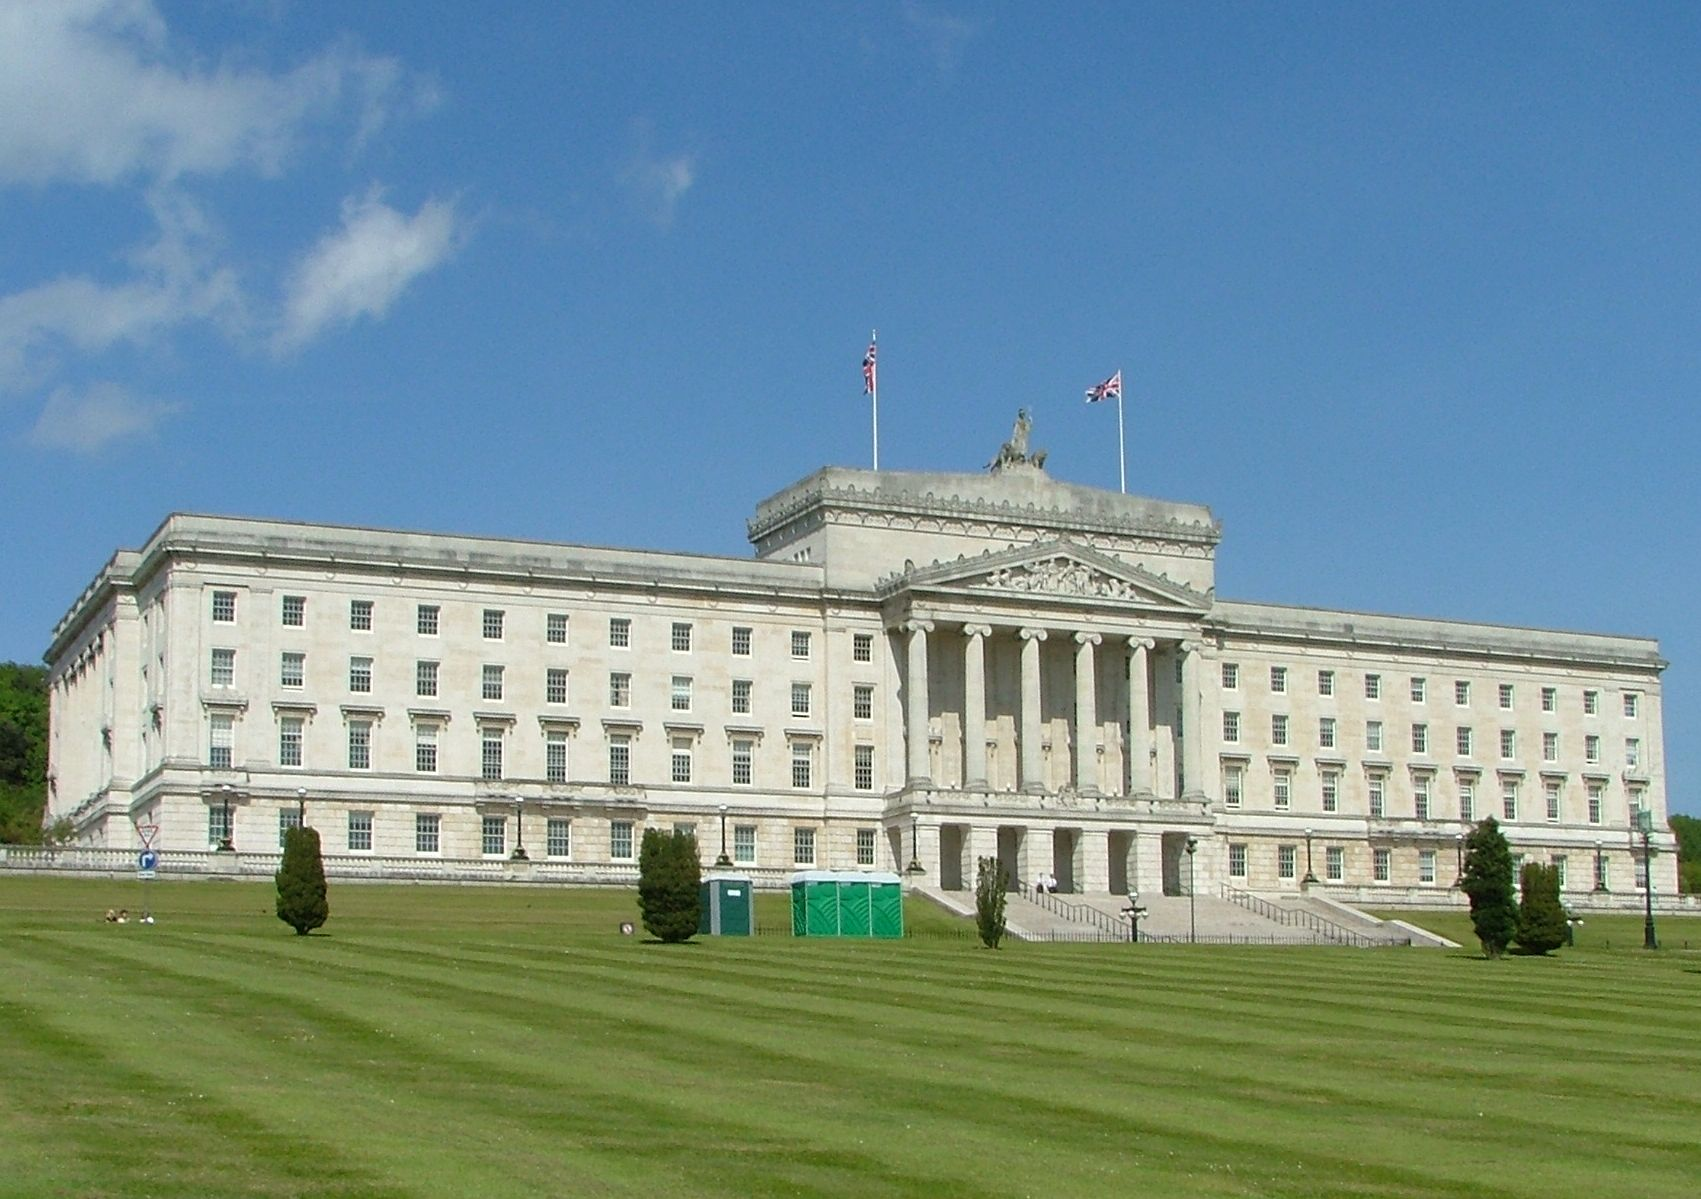 Parliament Buildings at Stormont, Belfast, seat of the assembly.